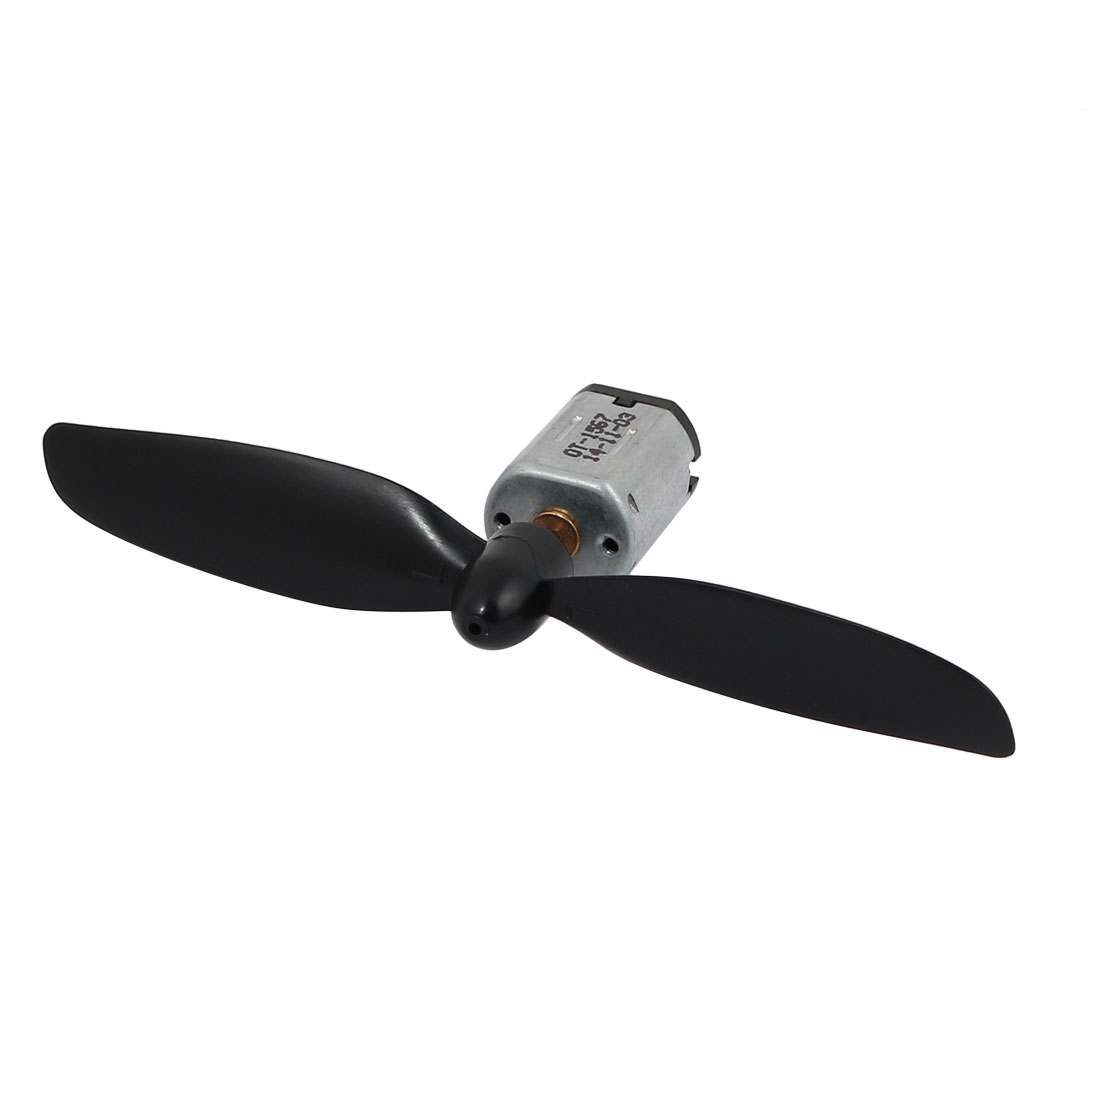 DC 3.7V 25000RPM N20 Strong Magnetic Motor with Helicopter CCW Propeller